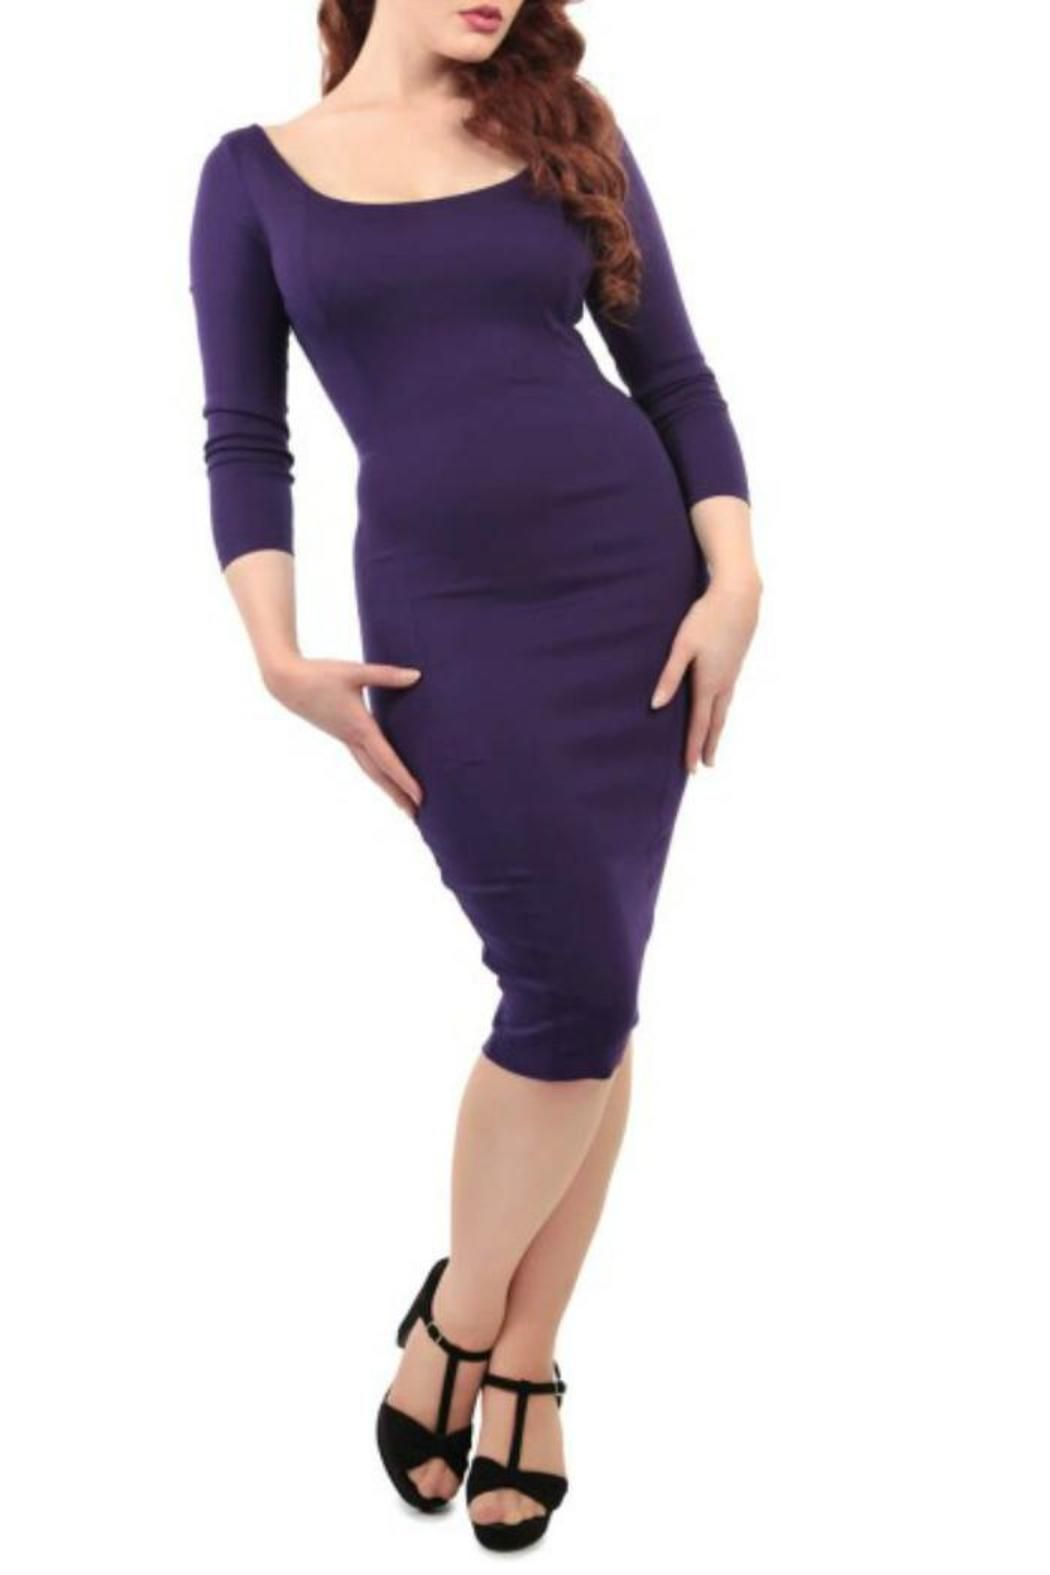 Collectif Clothing Tempest Pencil Dress